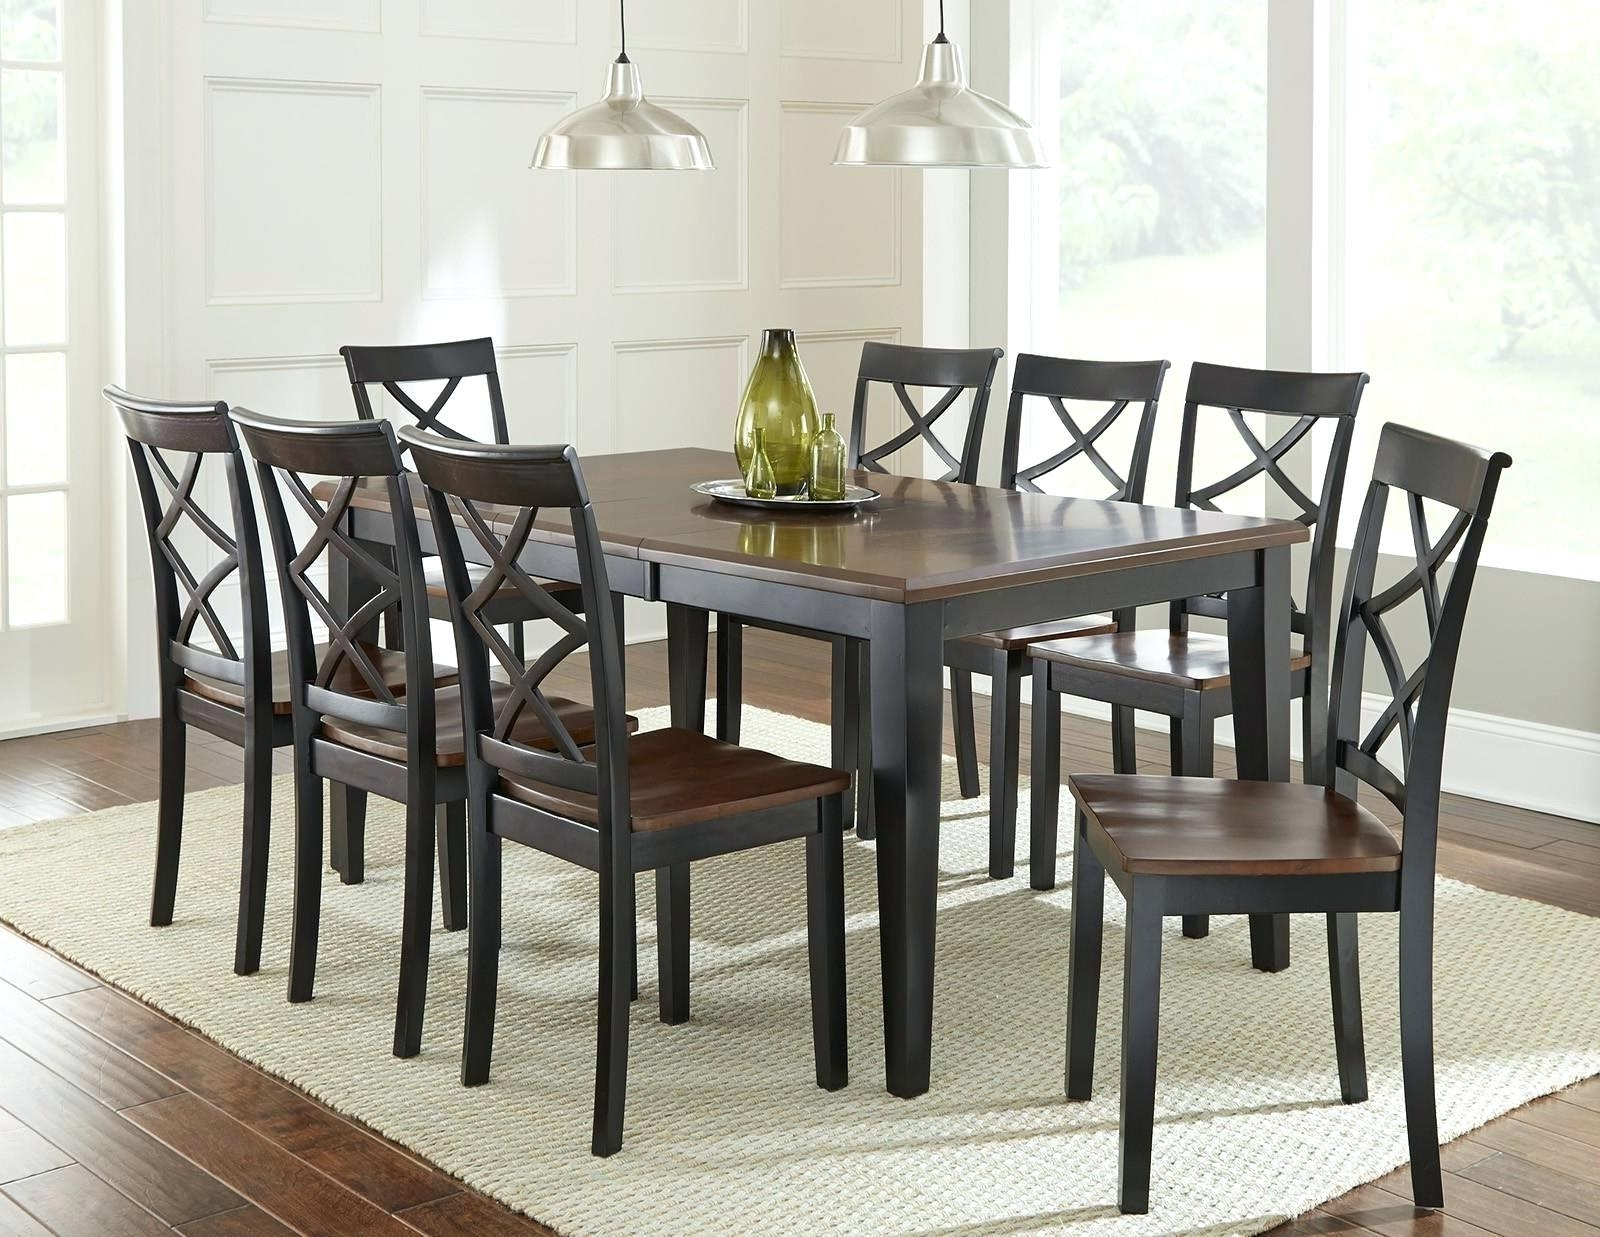 Cheery Caira Piece Extension Set Back Chairs Caira Piece Extension Intended For Most Current Chapleau Ii 9 Piece Extension Dining Tables With Side Chairs (View 8 of 25)